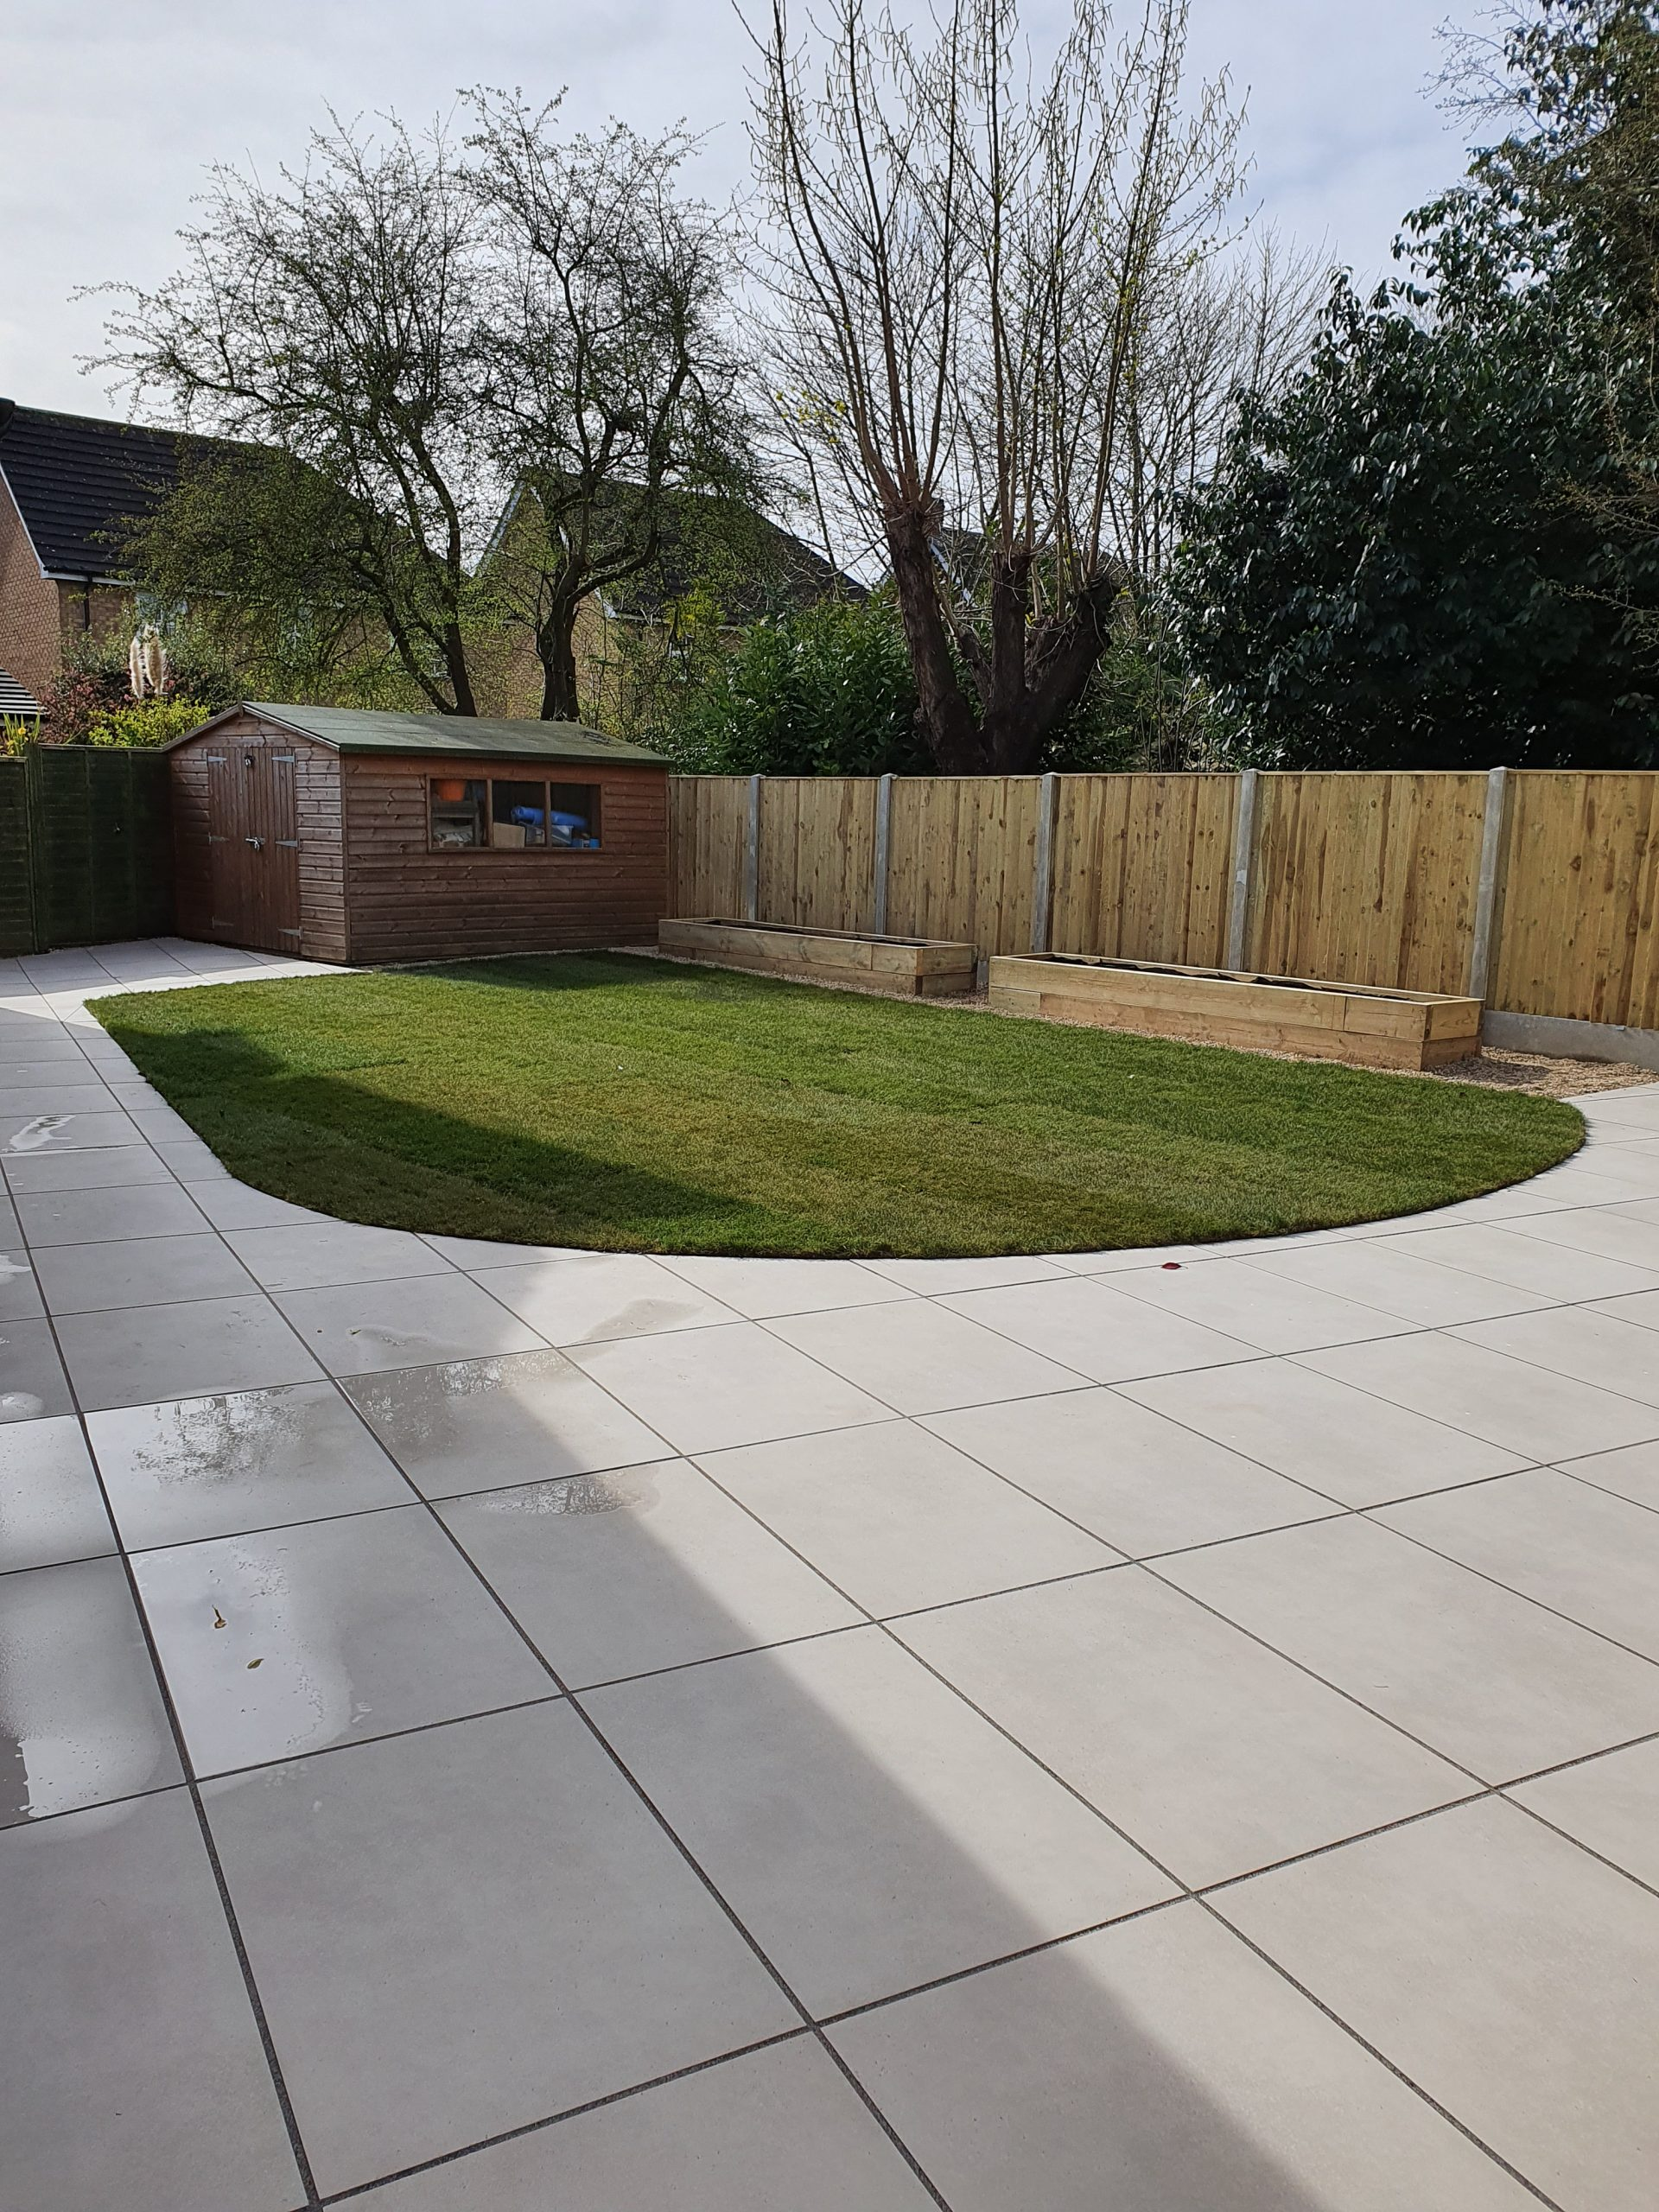 Light coloured slabbed landscaped garden, raised borders and fencing